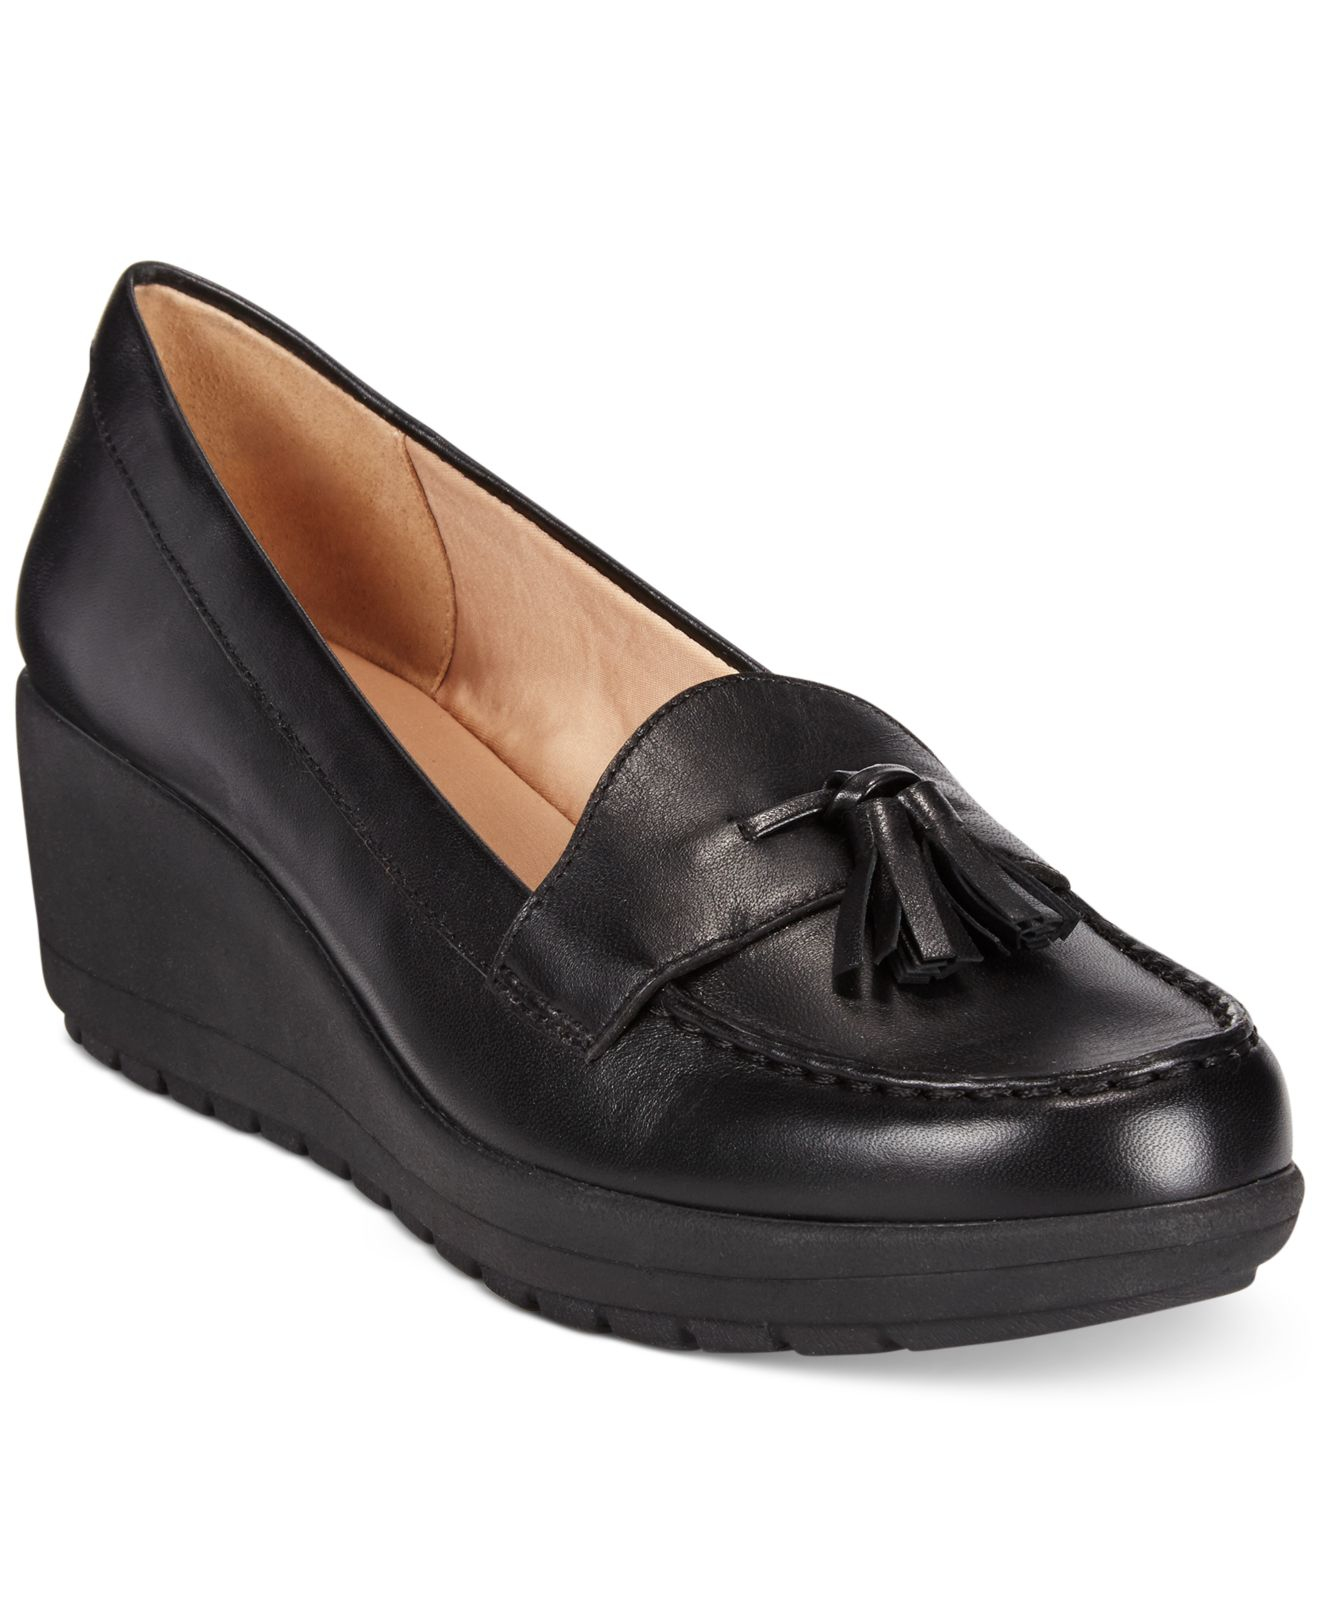 Find great deals on Womens Black Wedges Shoes at Kohl's today! Sponsored Links Journee Collection Dolup Women's Wedge Loafers. Regular. $ Eastland Poppy Women's Strappy Slide Wedge Sandals. sale. $ Regular $ Journee Collection Twyla Women's Wedge Sandals.